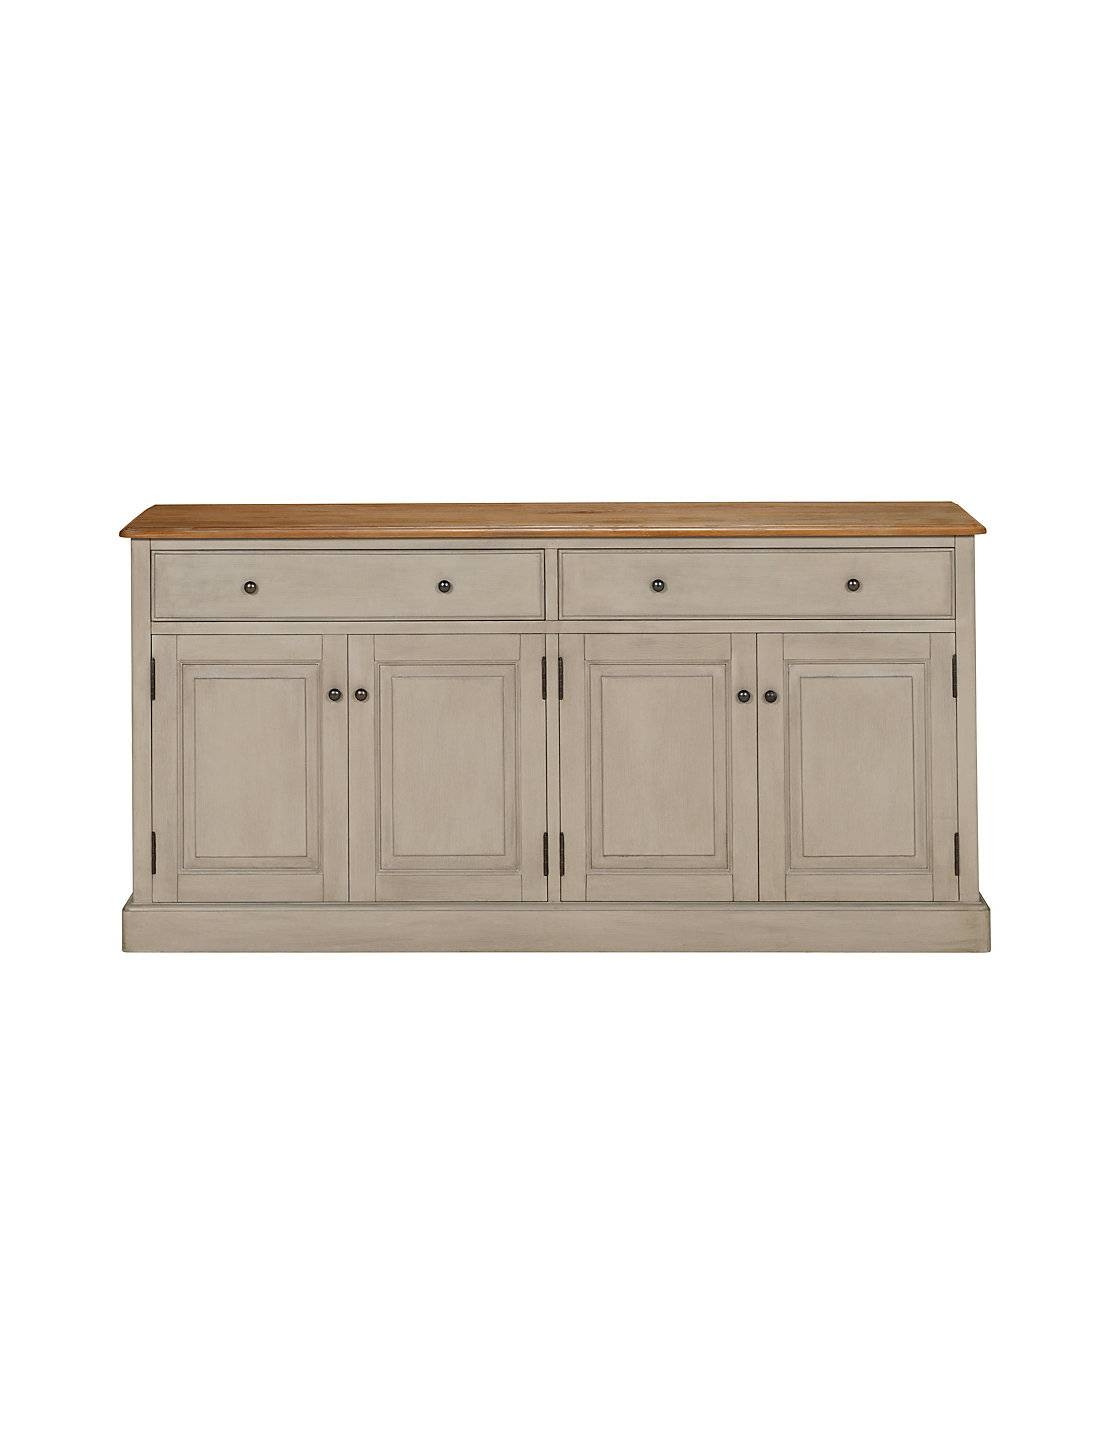 Sideboard Elegant Marks And Spencer Sideboard 17 For Malm Floating Within Marks And Spencer Sideboards (View 7 of 15)